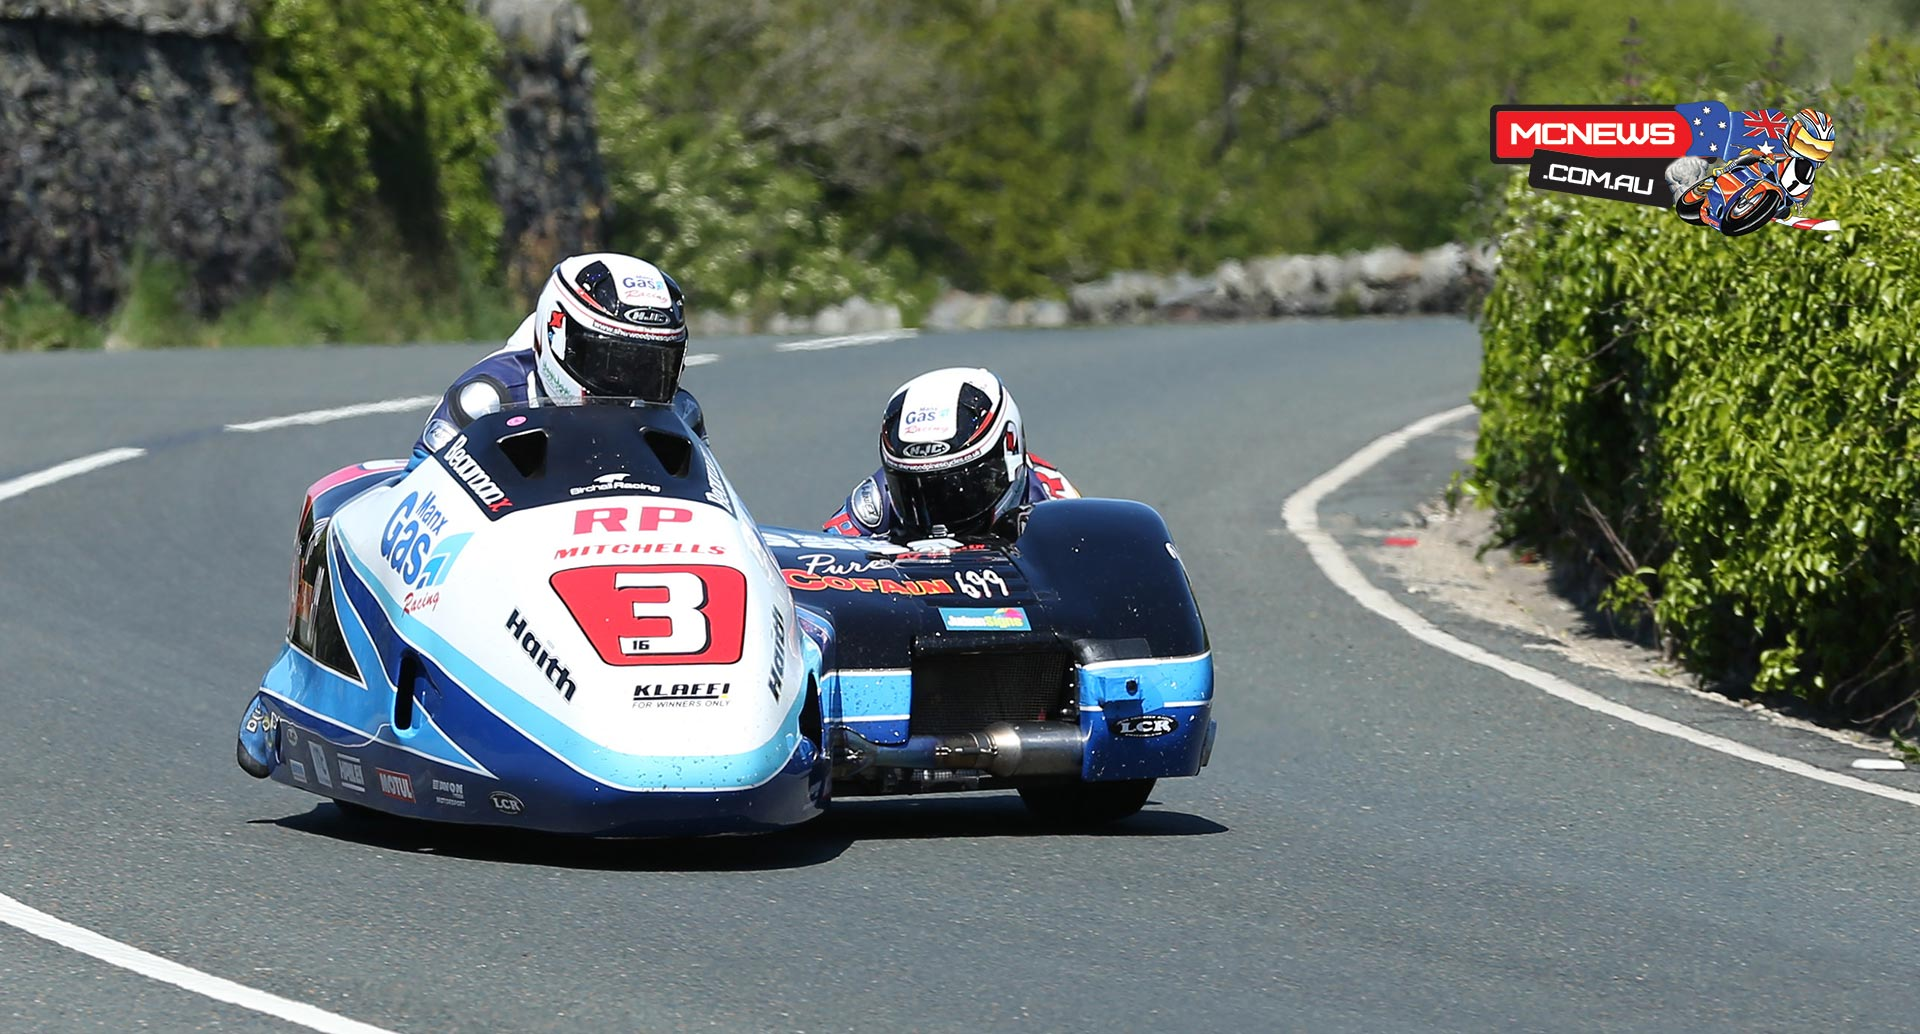 IOM TT 2015 - Sidecar Race Two - Ben and Tom Birchall approach the Gooseneck during Sure Sidecar Race 2. Credit Dave Kneen/Pacemaker Press Intl.